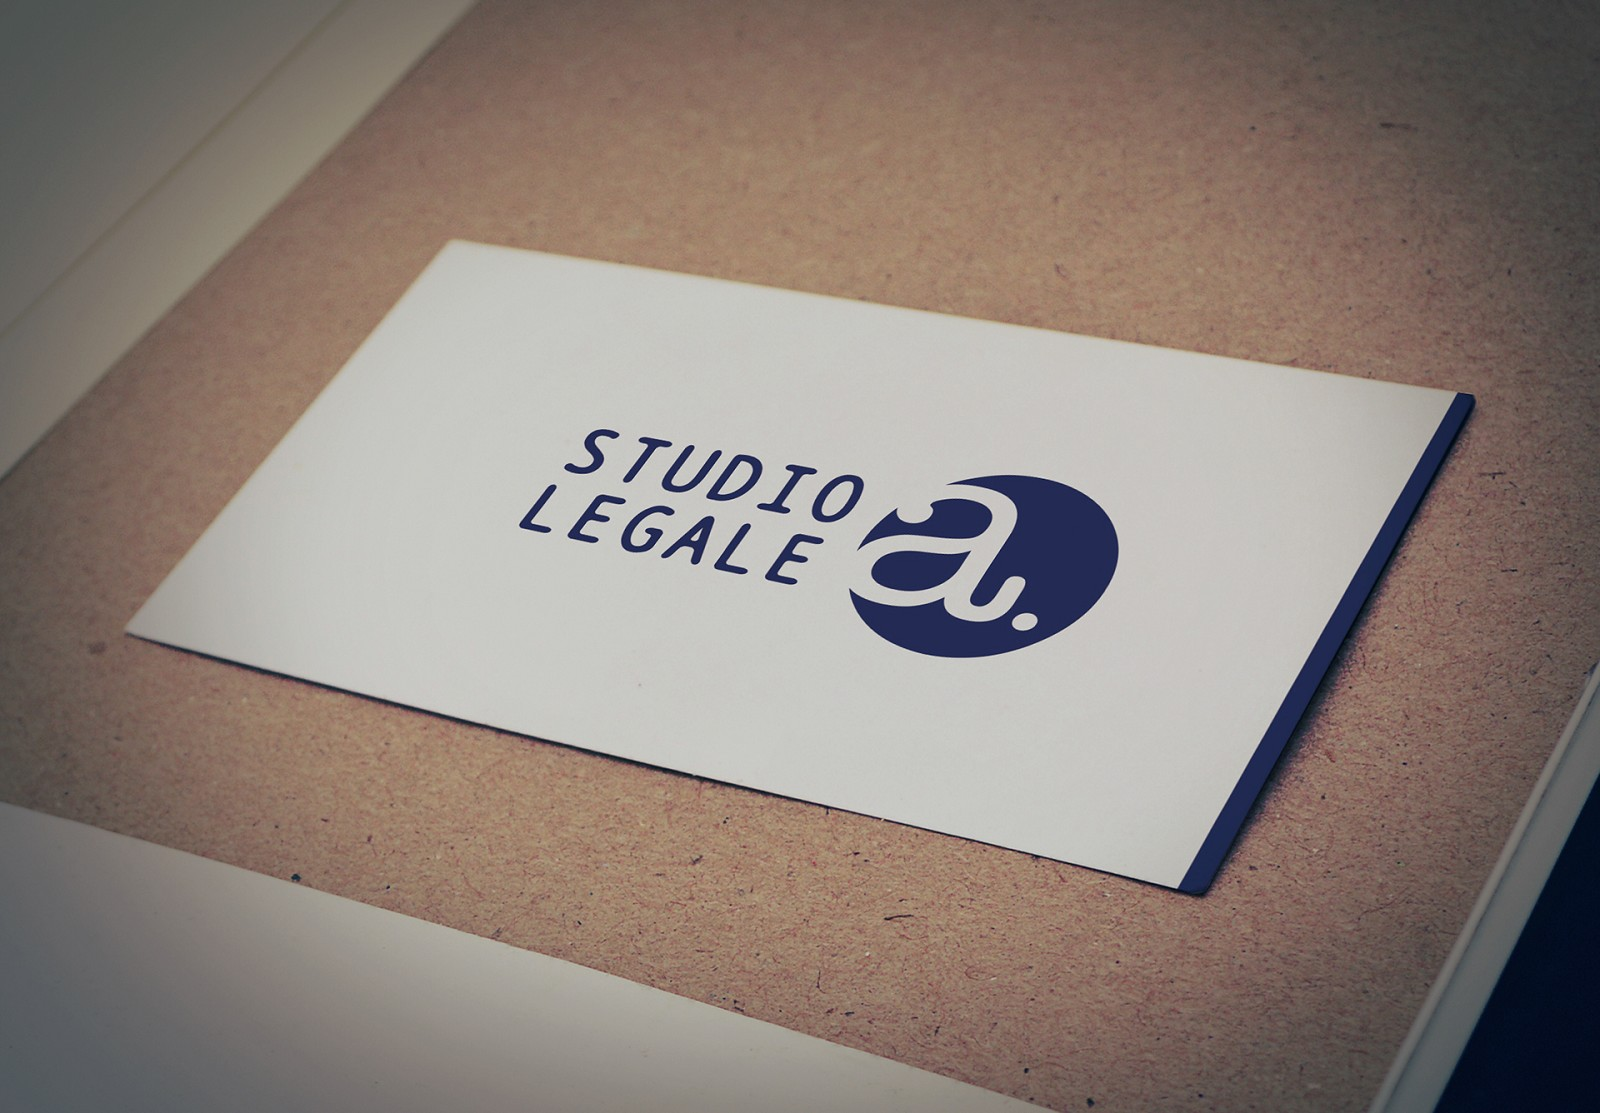 Studio Legale A - Business card